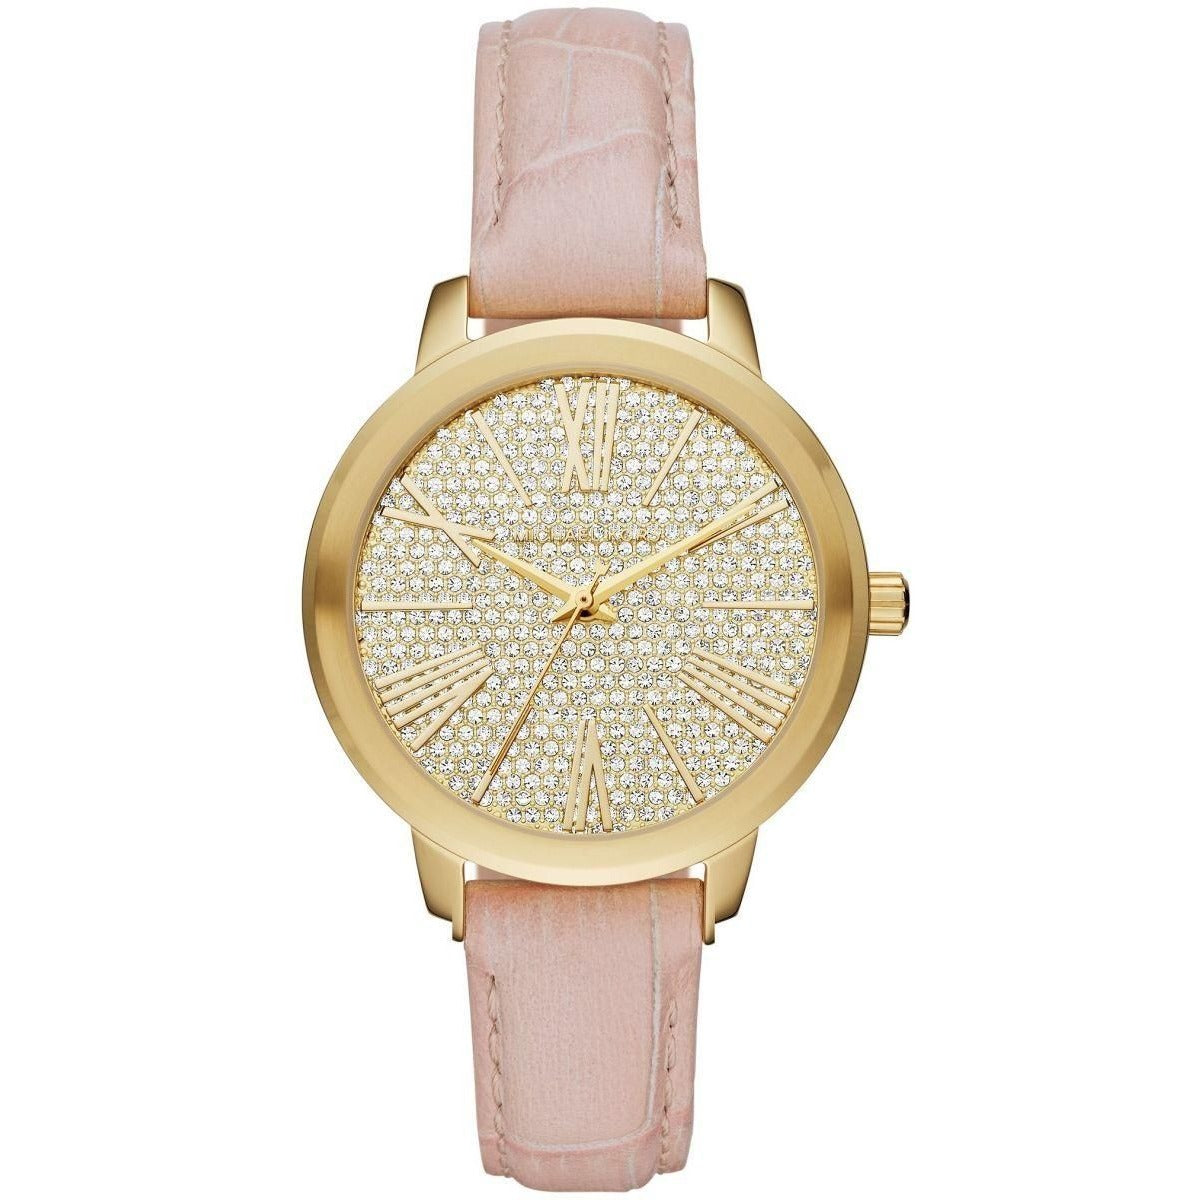 Michael Kors Hartman Women's Gold Pave Dial Leather Band Watch - MK2480